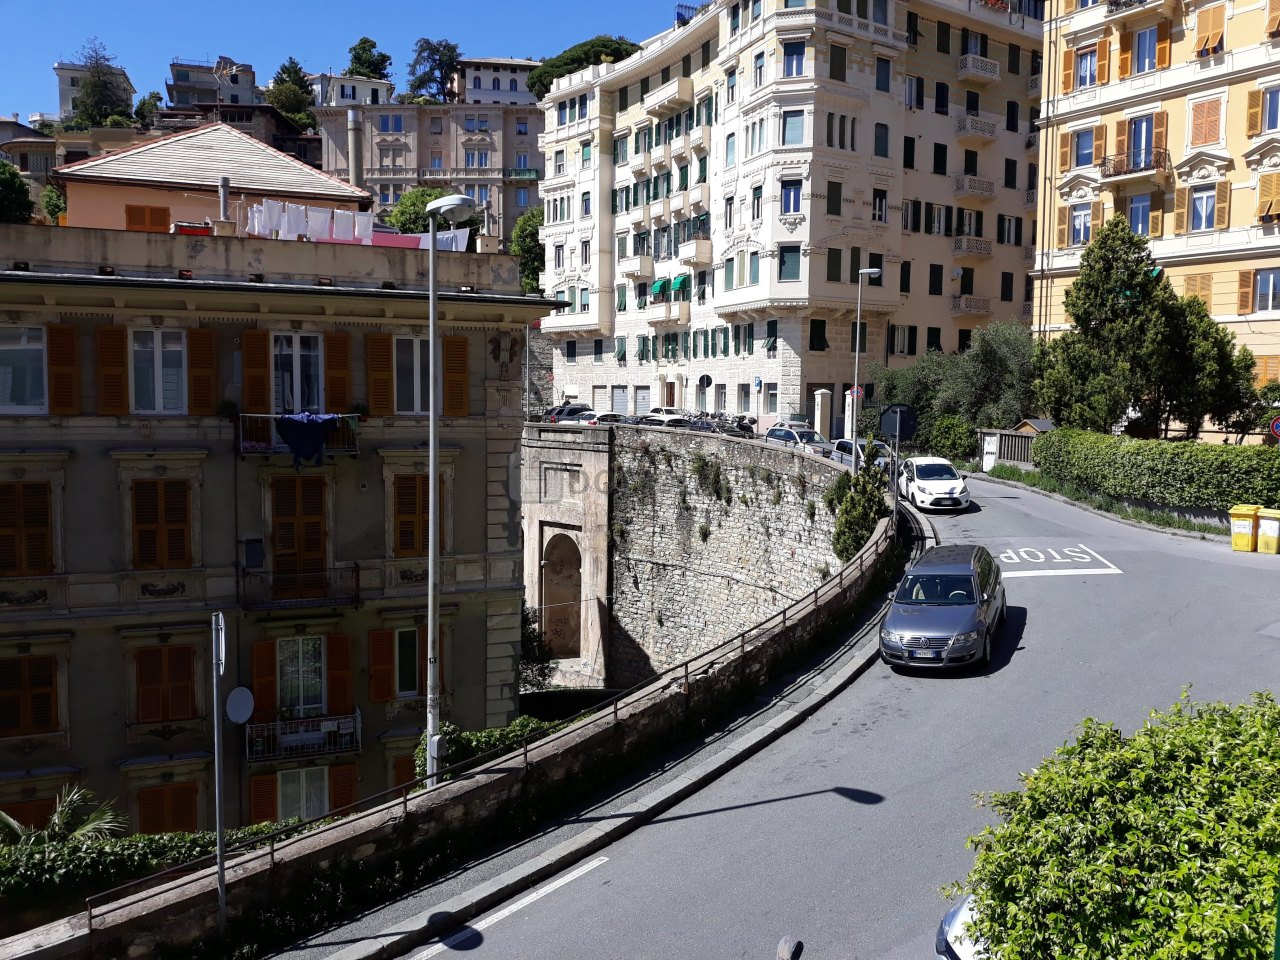 genova vendita quart: castelletto immobiliare bortolai.it srl